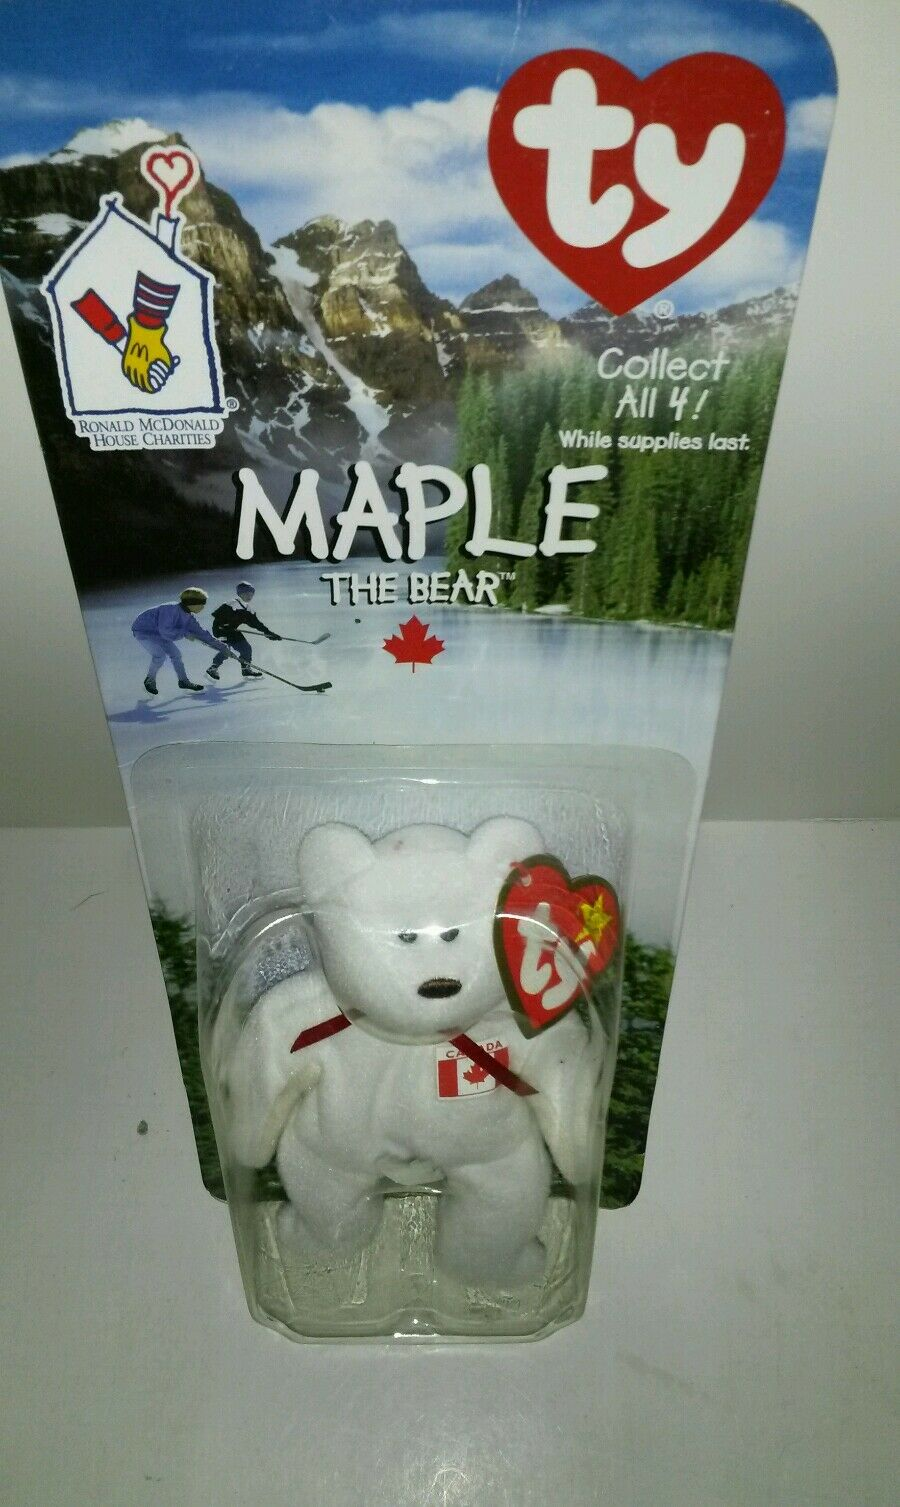 BRAND NEW TY BEANIE BABY MAPLE THE BEAR (McDonalds)(misprint)